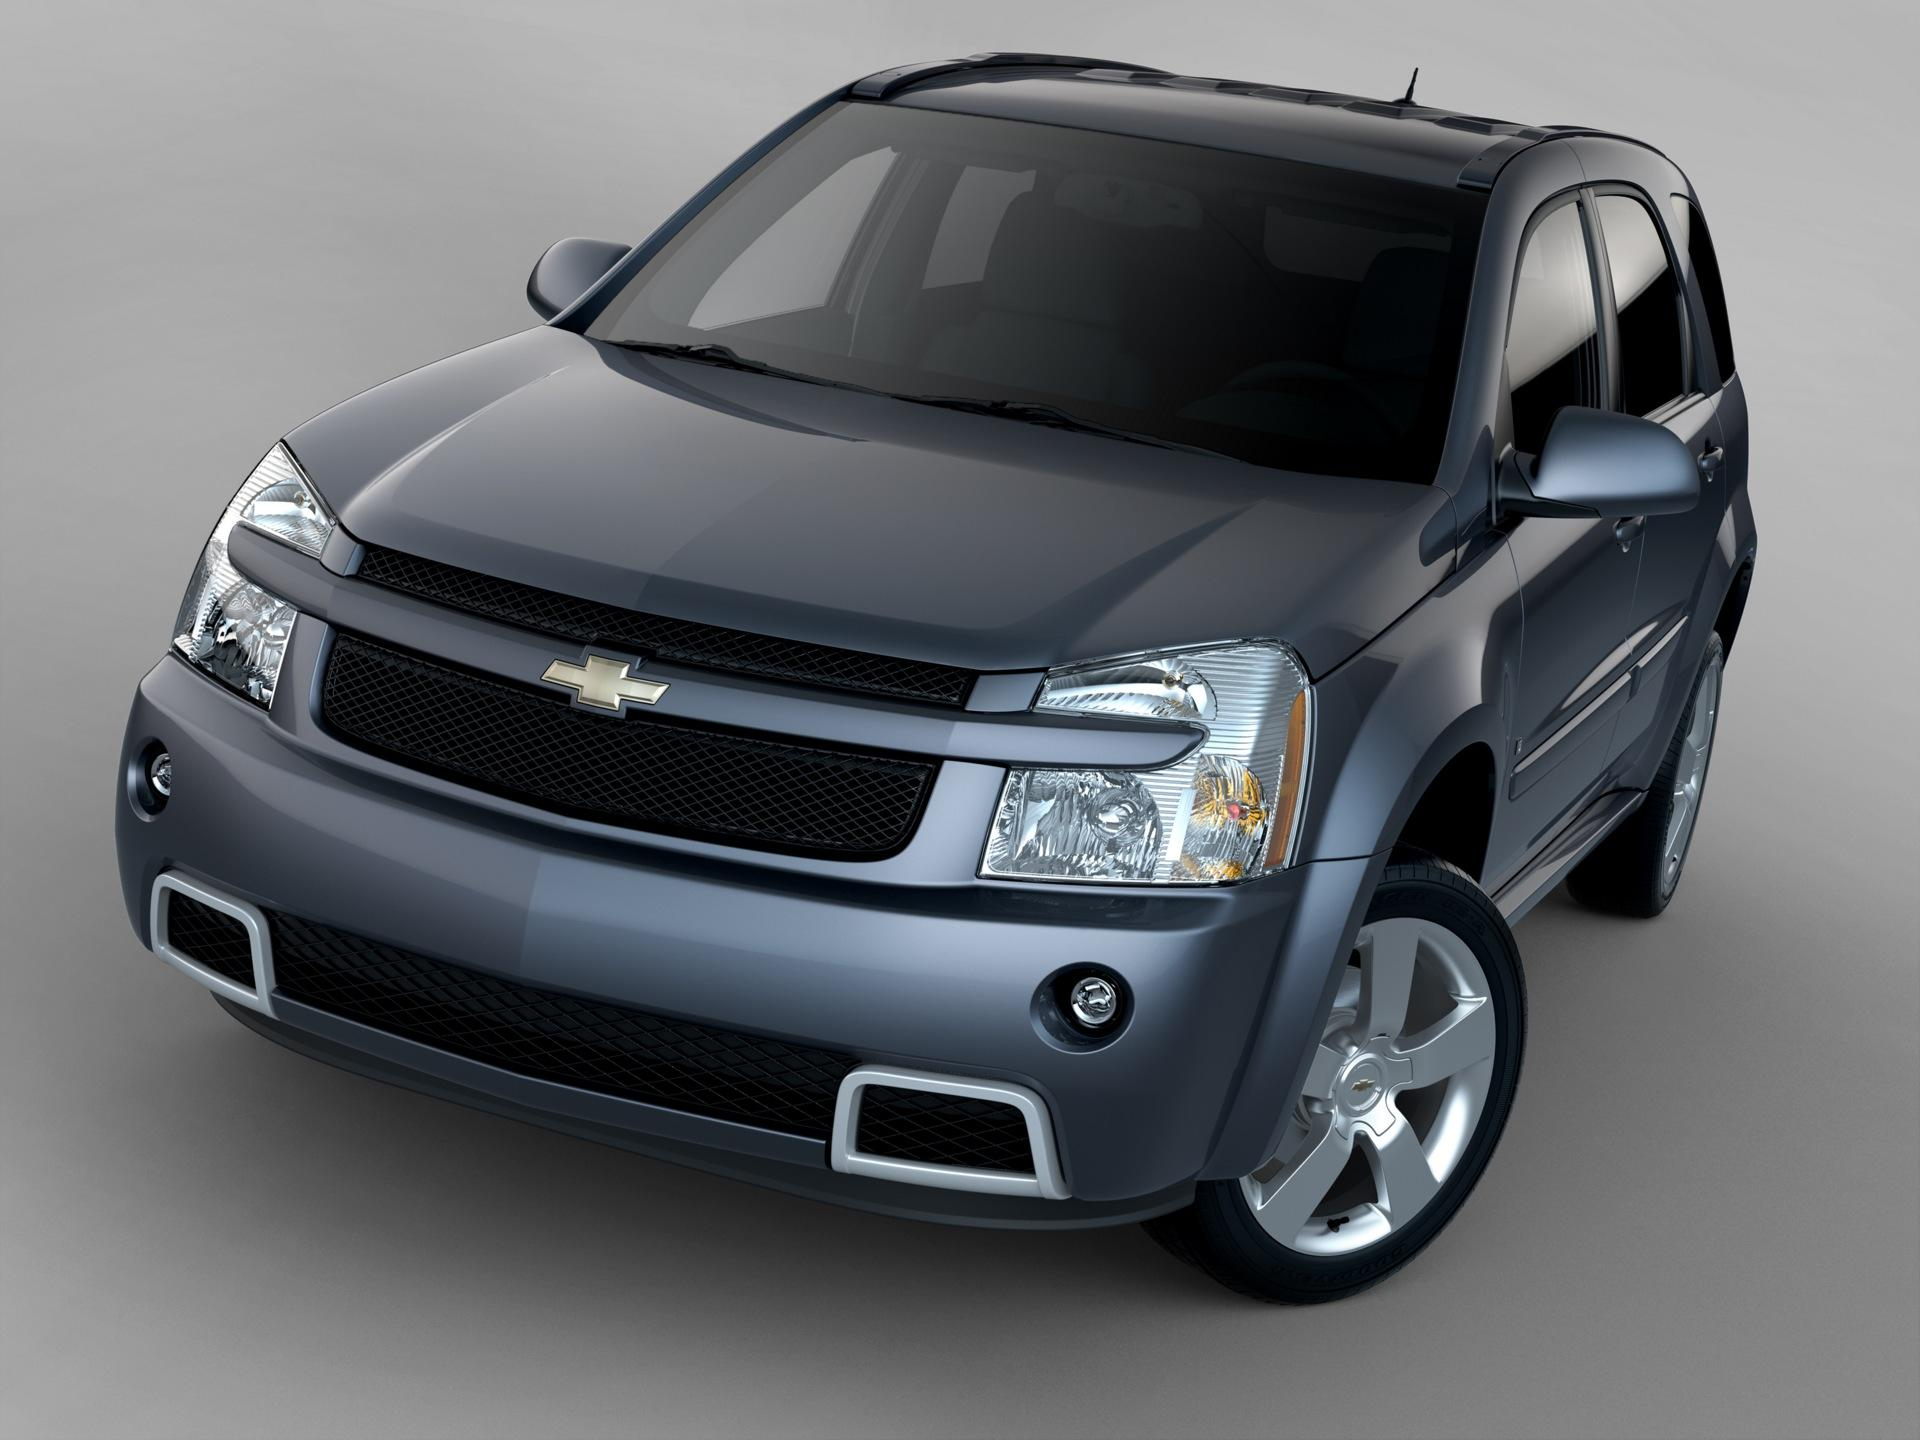 2008 Chevrolet Equinox News and Information